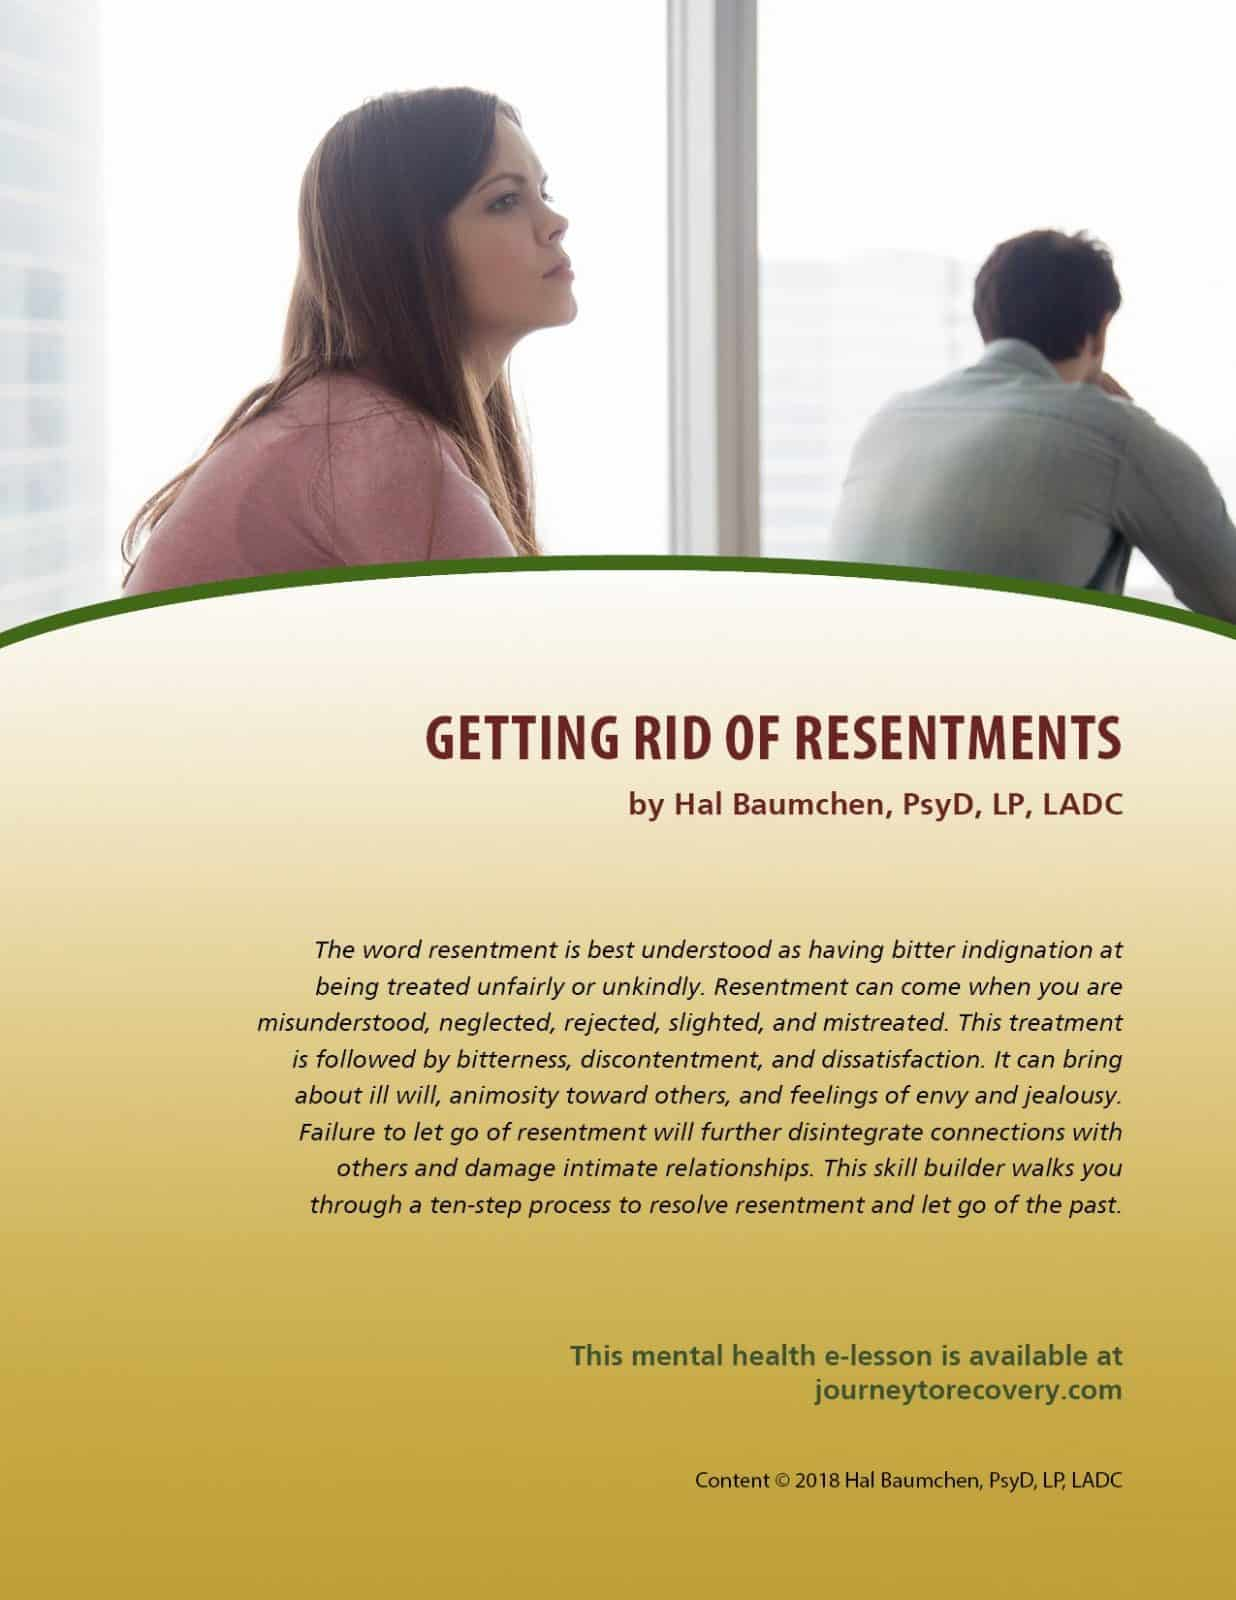 Getting Rid of Resentments (MH Lesson)